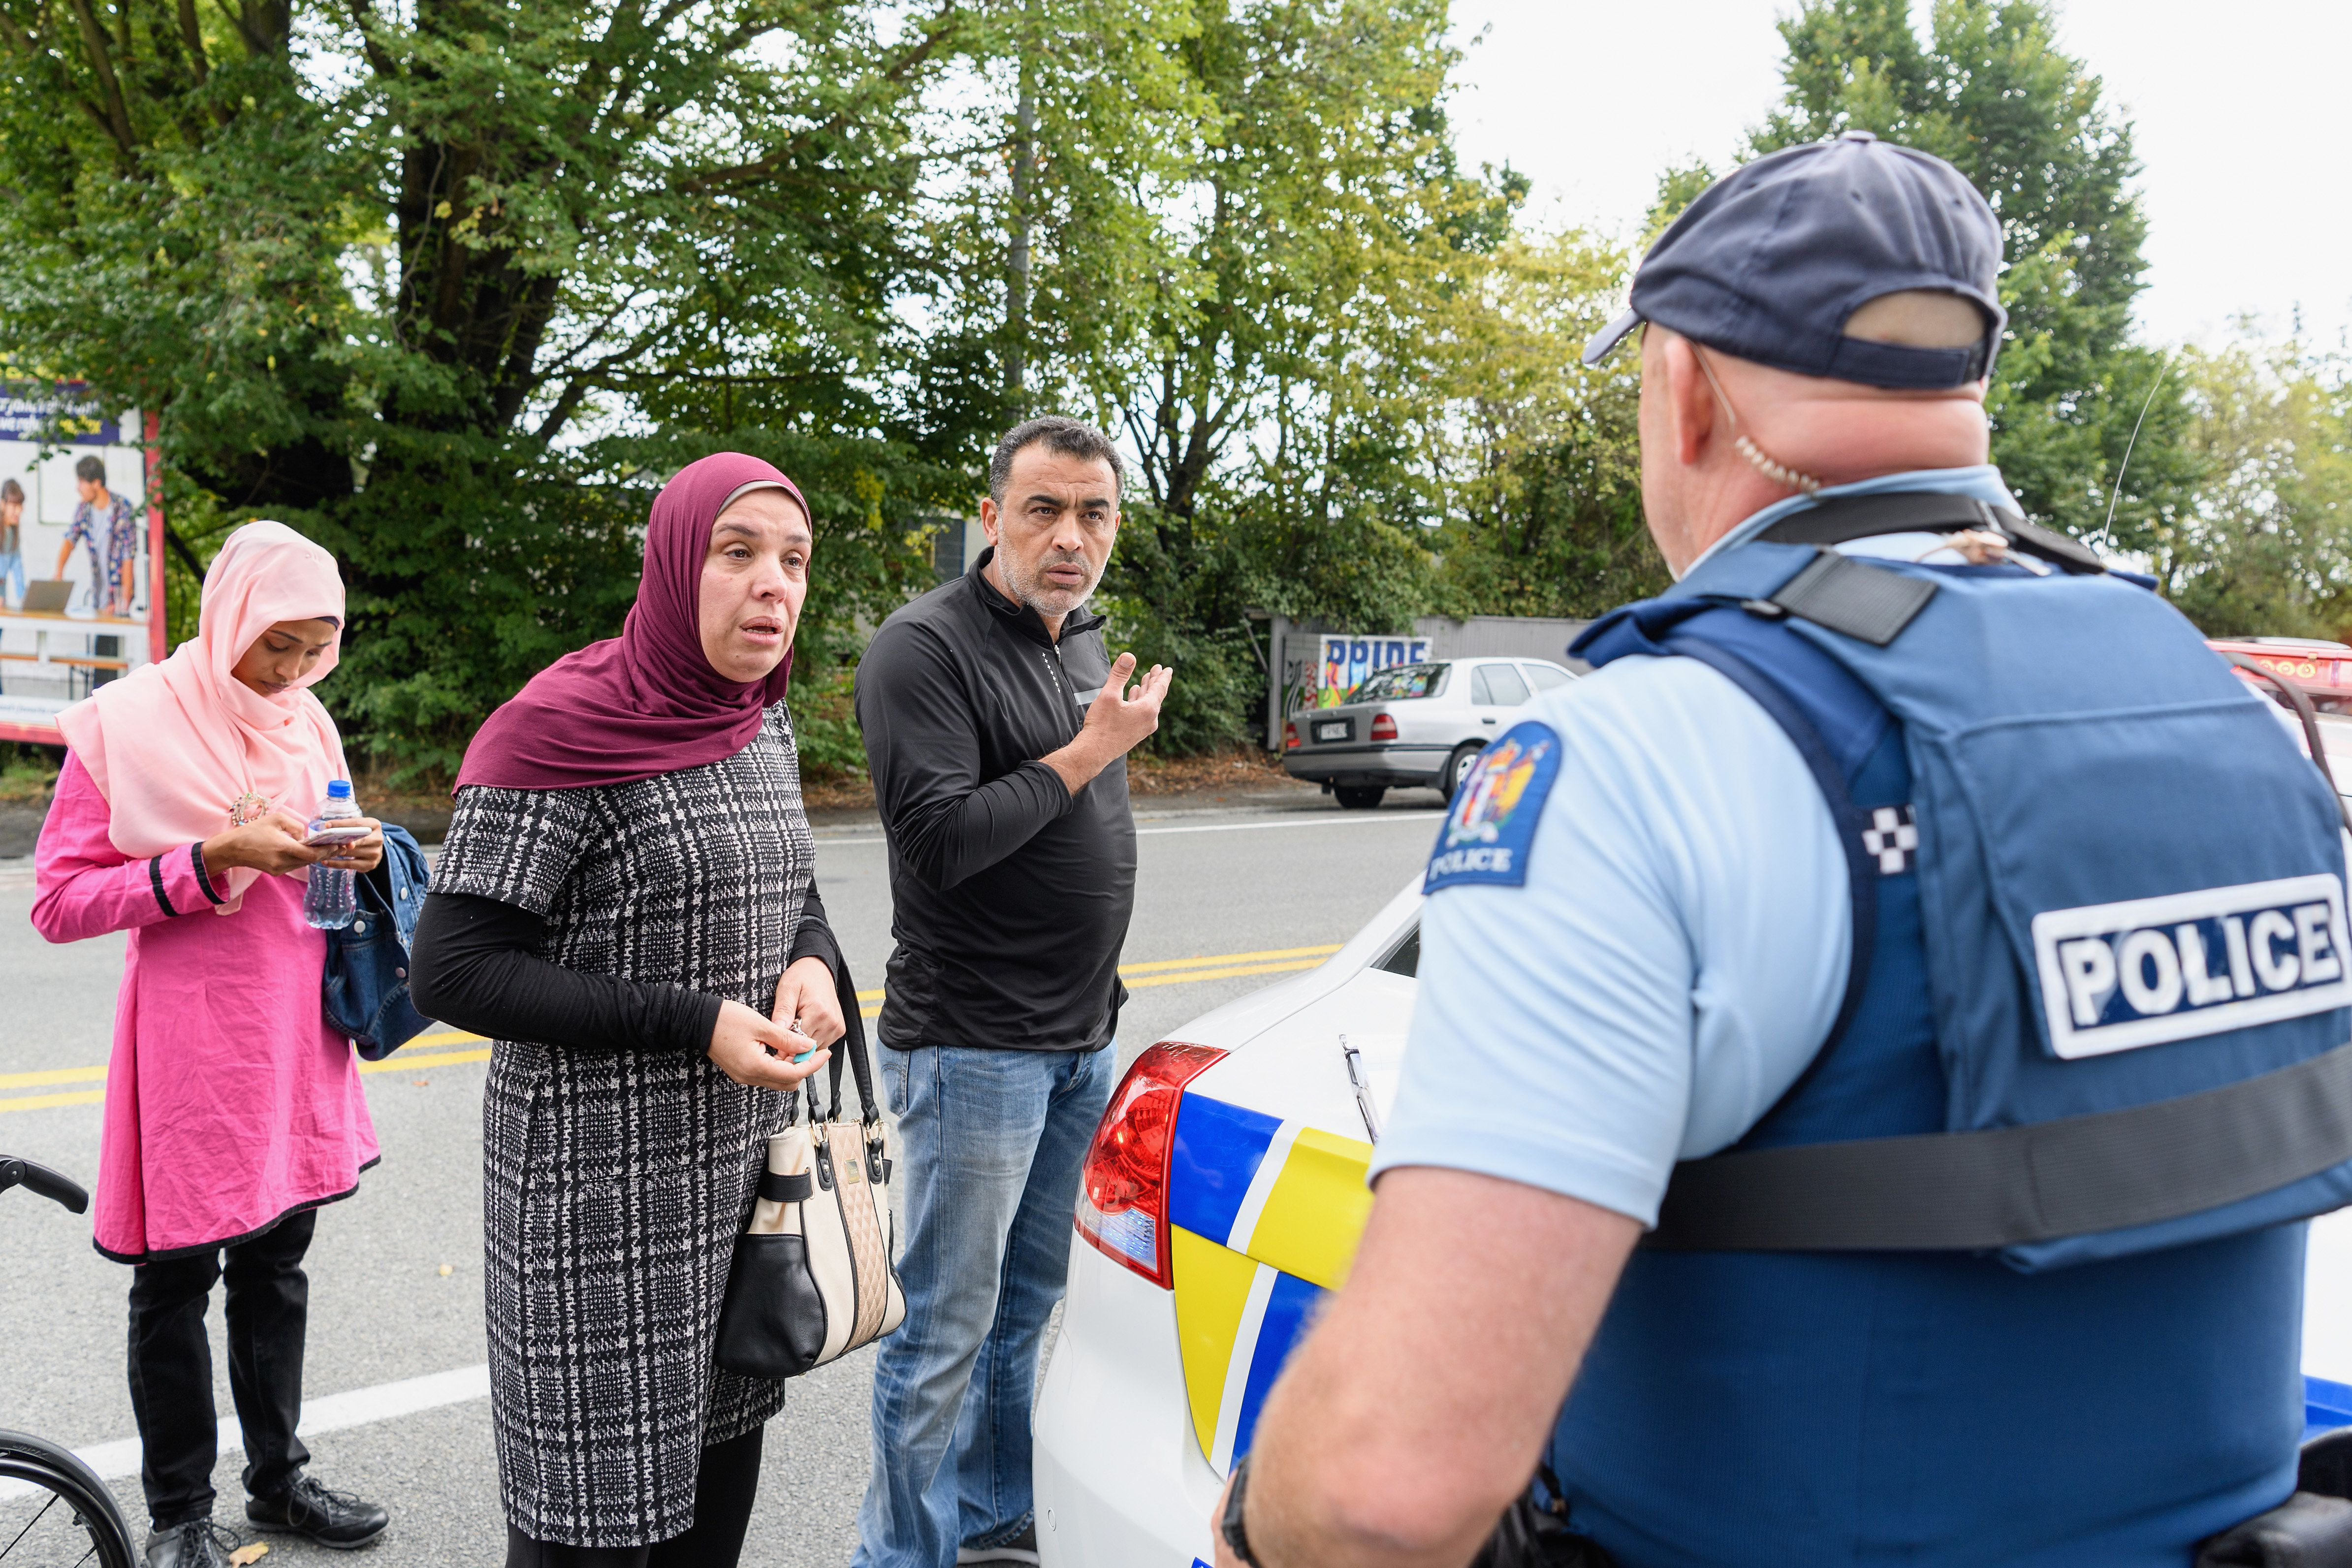 CHRISTCHURCH, NEW ZEALAND - MARCH 15: Members of the public react in front of the Masjd Al Noor Mosque as they fear for their relatives on March 15, 2019 in Christchurch, New Zealand. 49 people have been confirmed dead and more than 20 are injured following attacks at two mosques in Christchurch. Four people are in custody following shootings at Al Noor mosque on Dean's Road and the Linwood Masjid in Christchurch. Mosques across New Zealand have been closed and police are urging people not to attend Friday prayers as a safety precaution. (Photo by Kai Schwoerer/Getty Images)